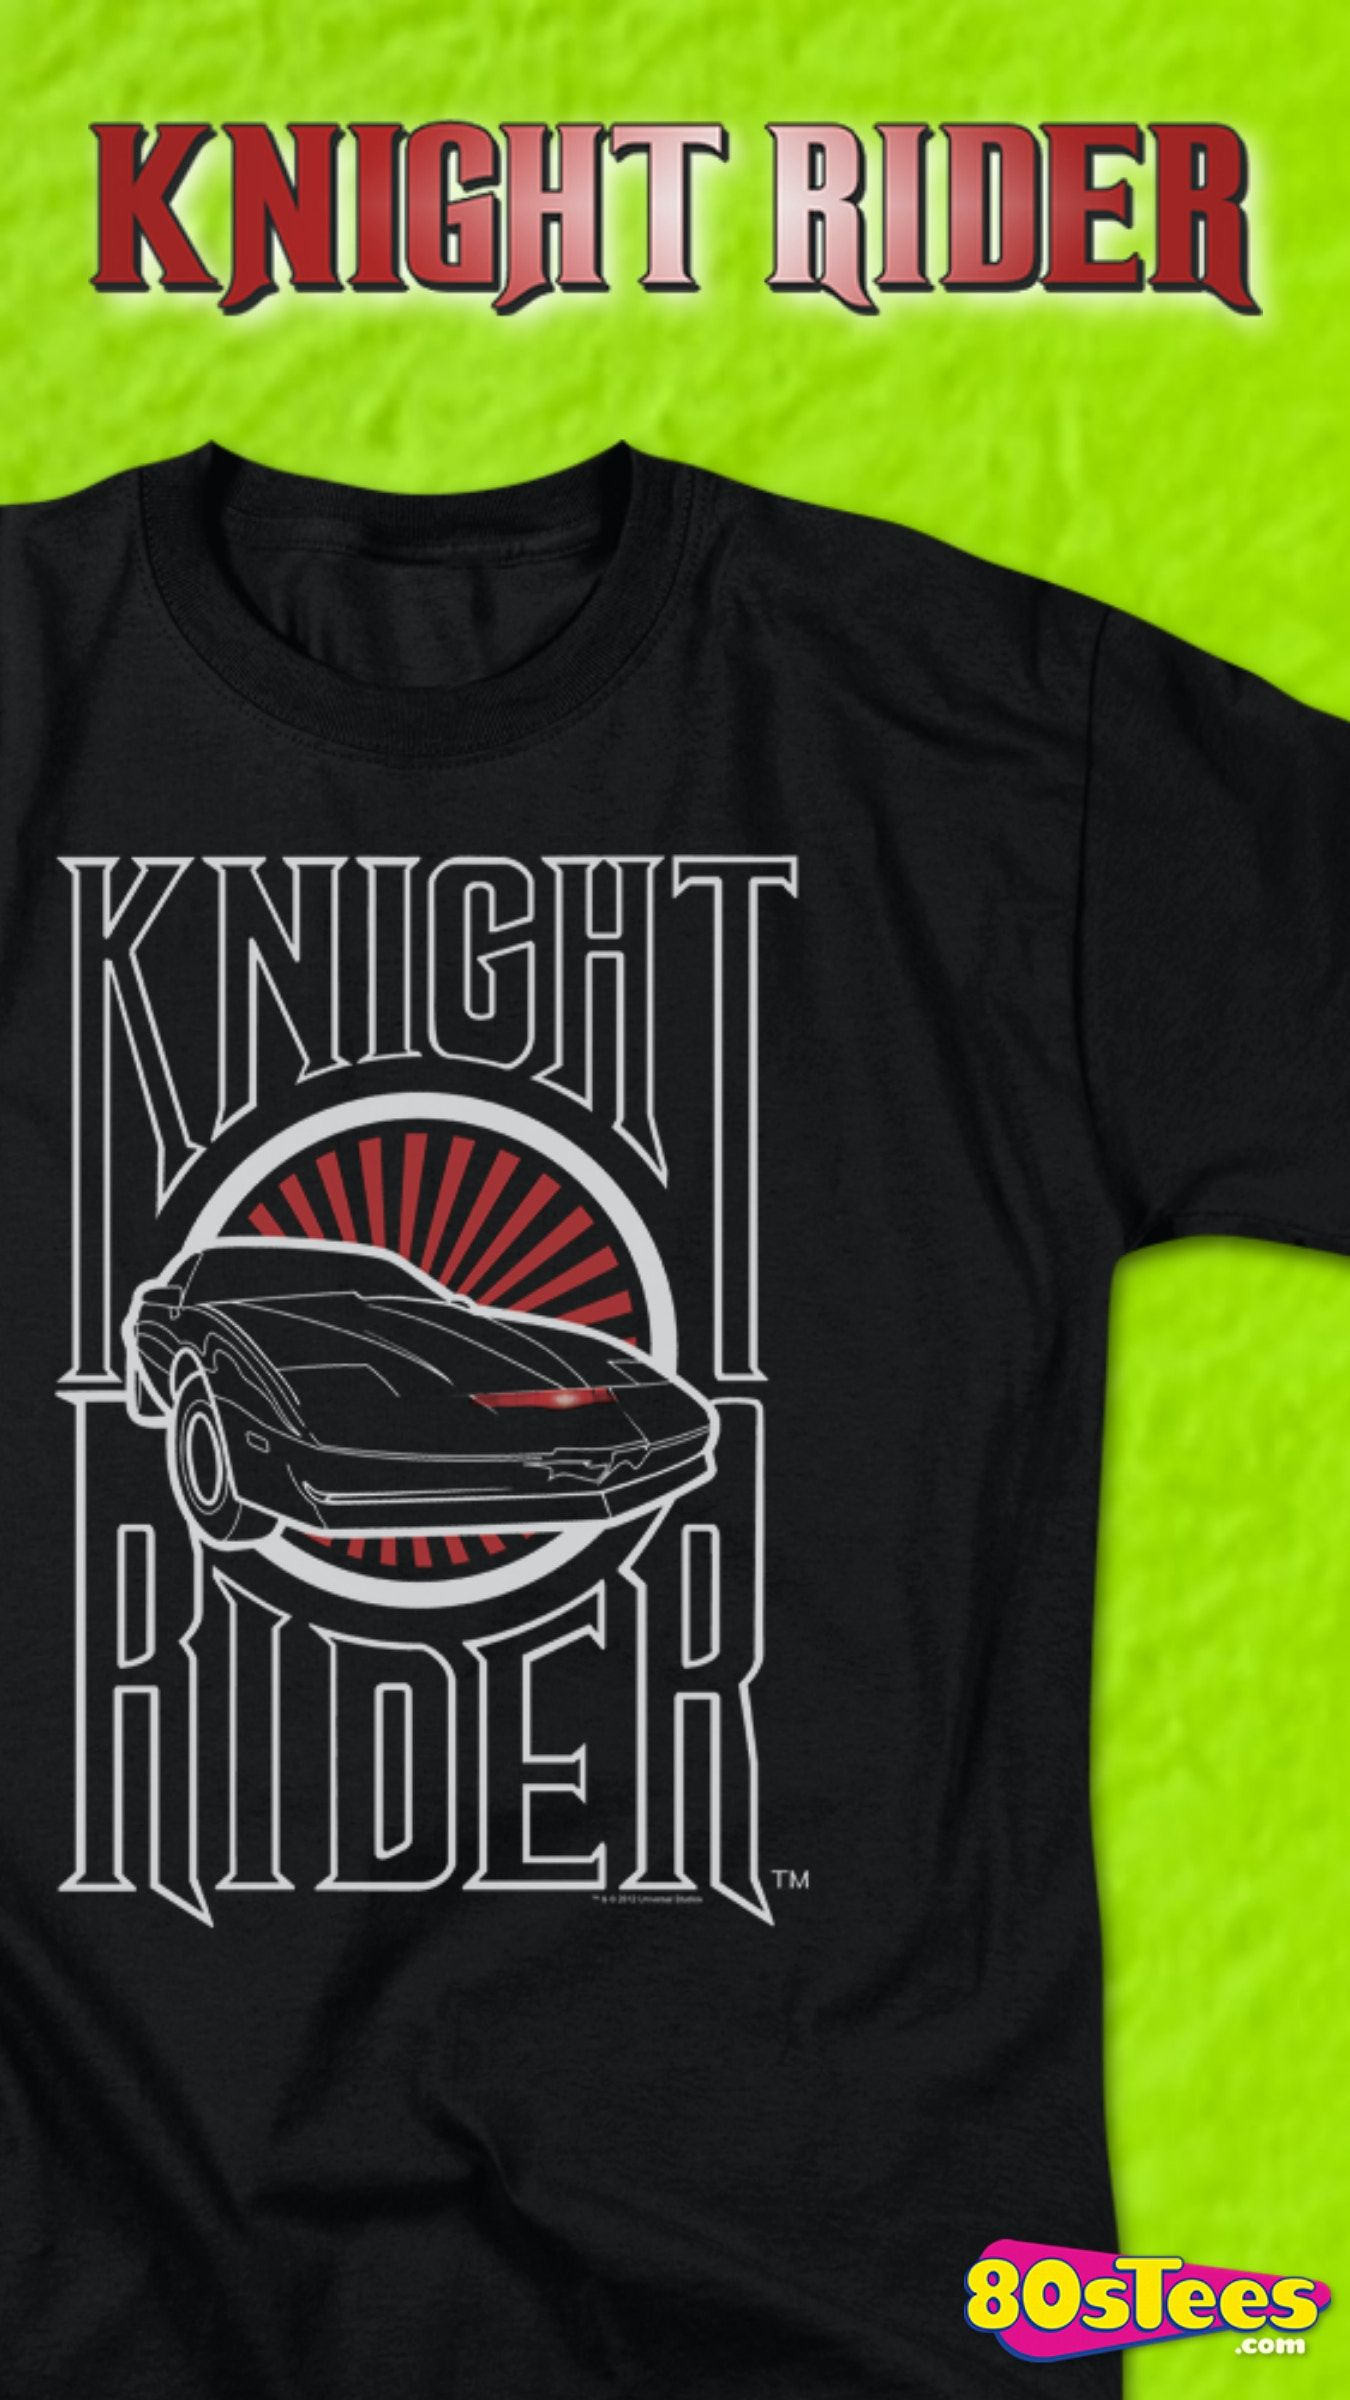 Knight industries two thousand knight rider tshirt in